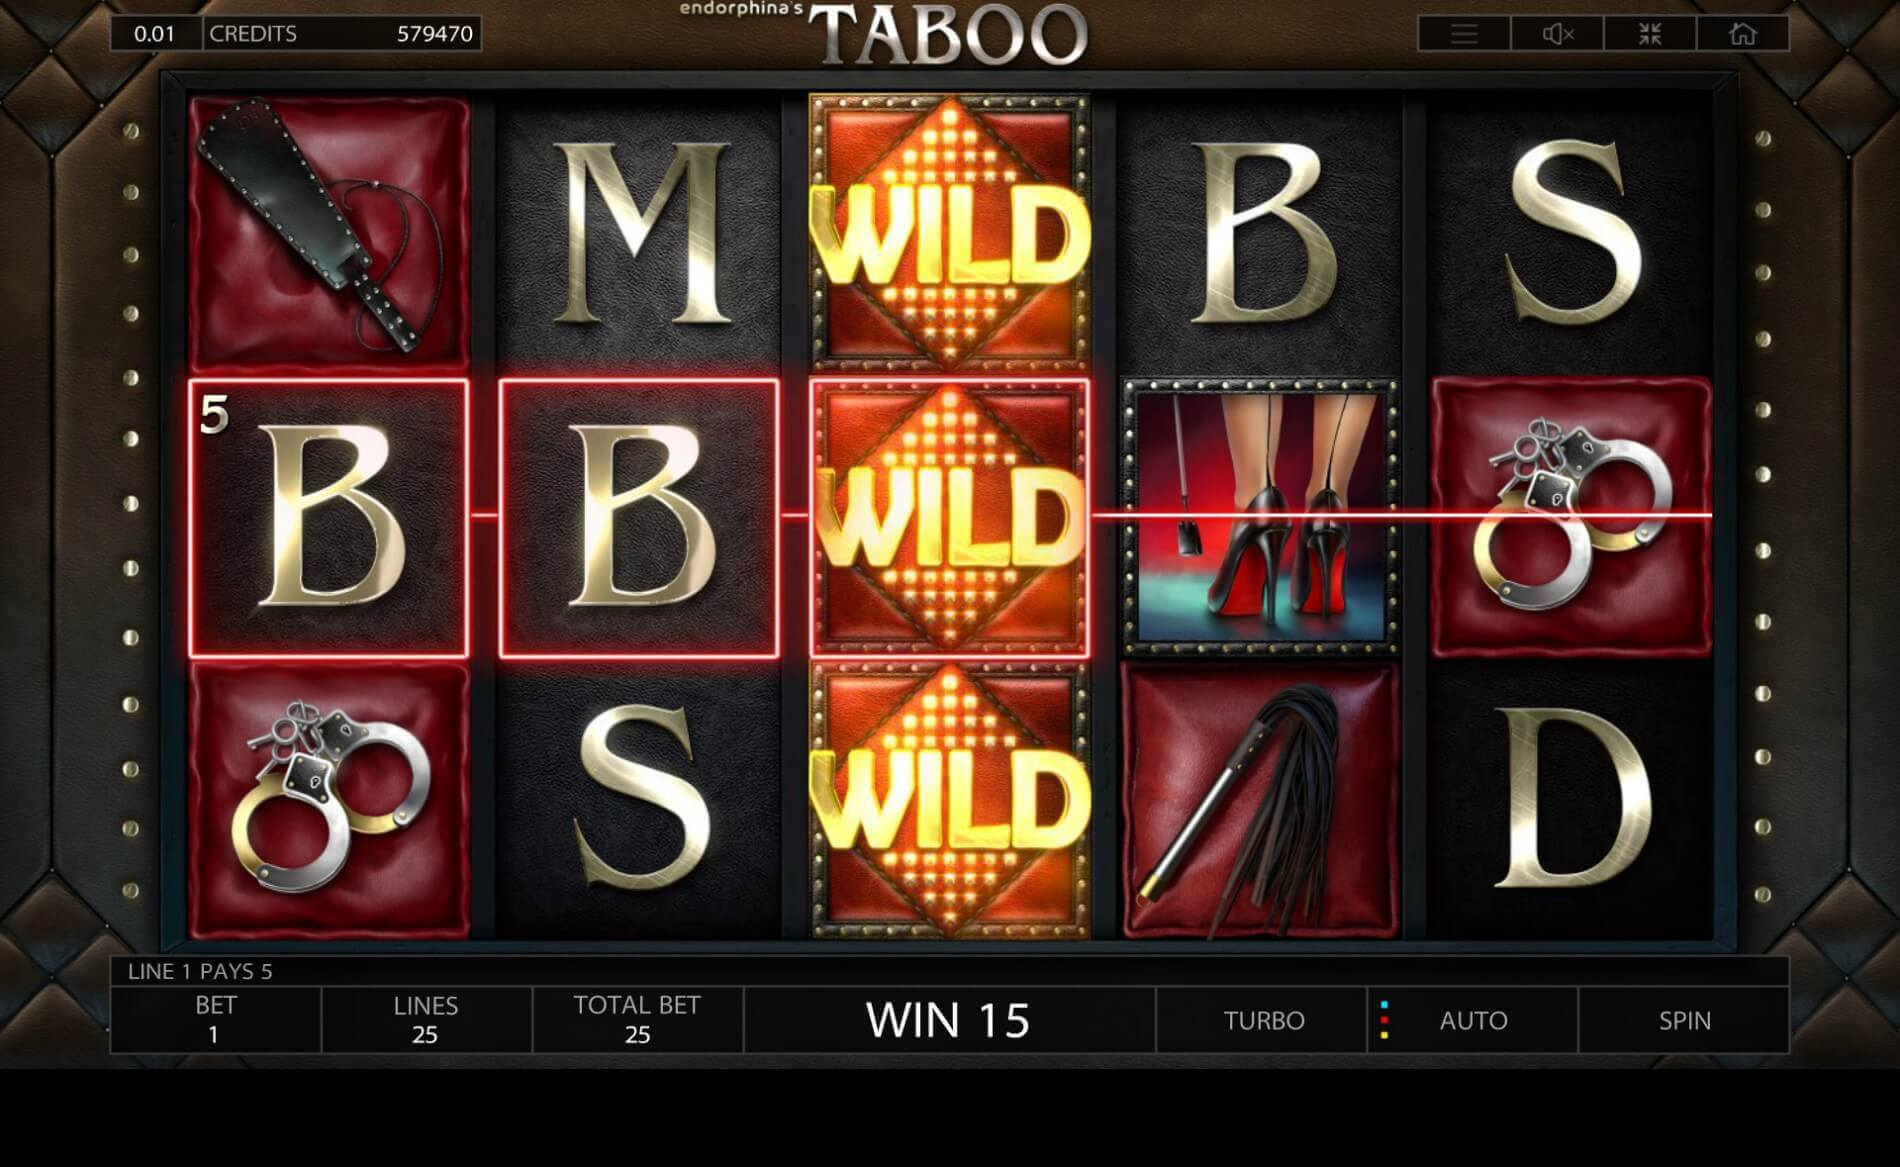 Taboo ply free demo